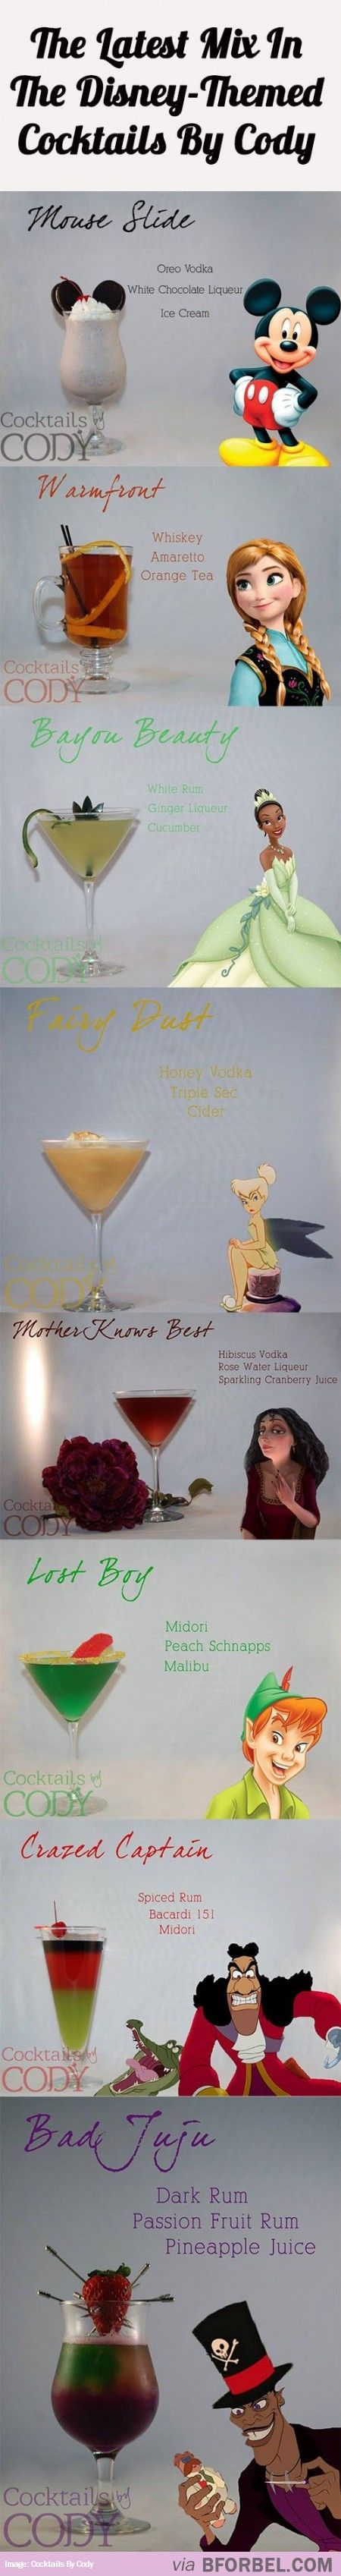 8 Of The Latest Disney-Themed Cocktails…